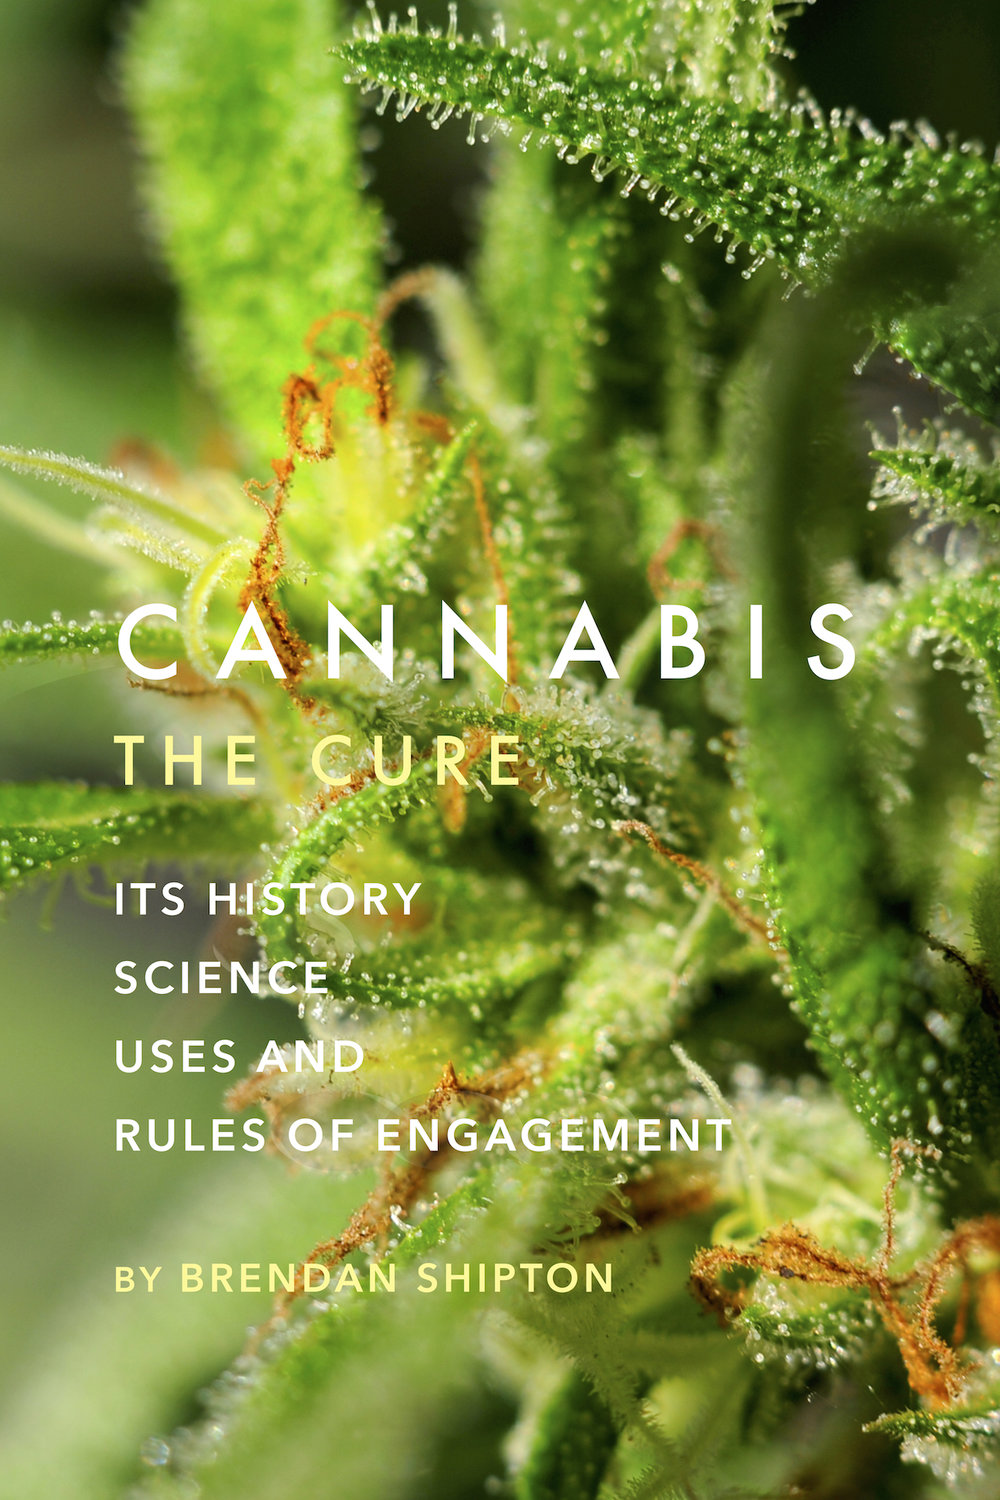 CANNABIS - THE CURE - RFS.jpeg